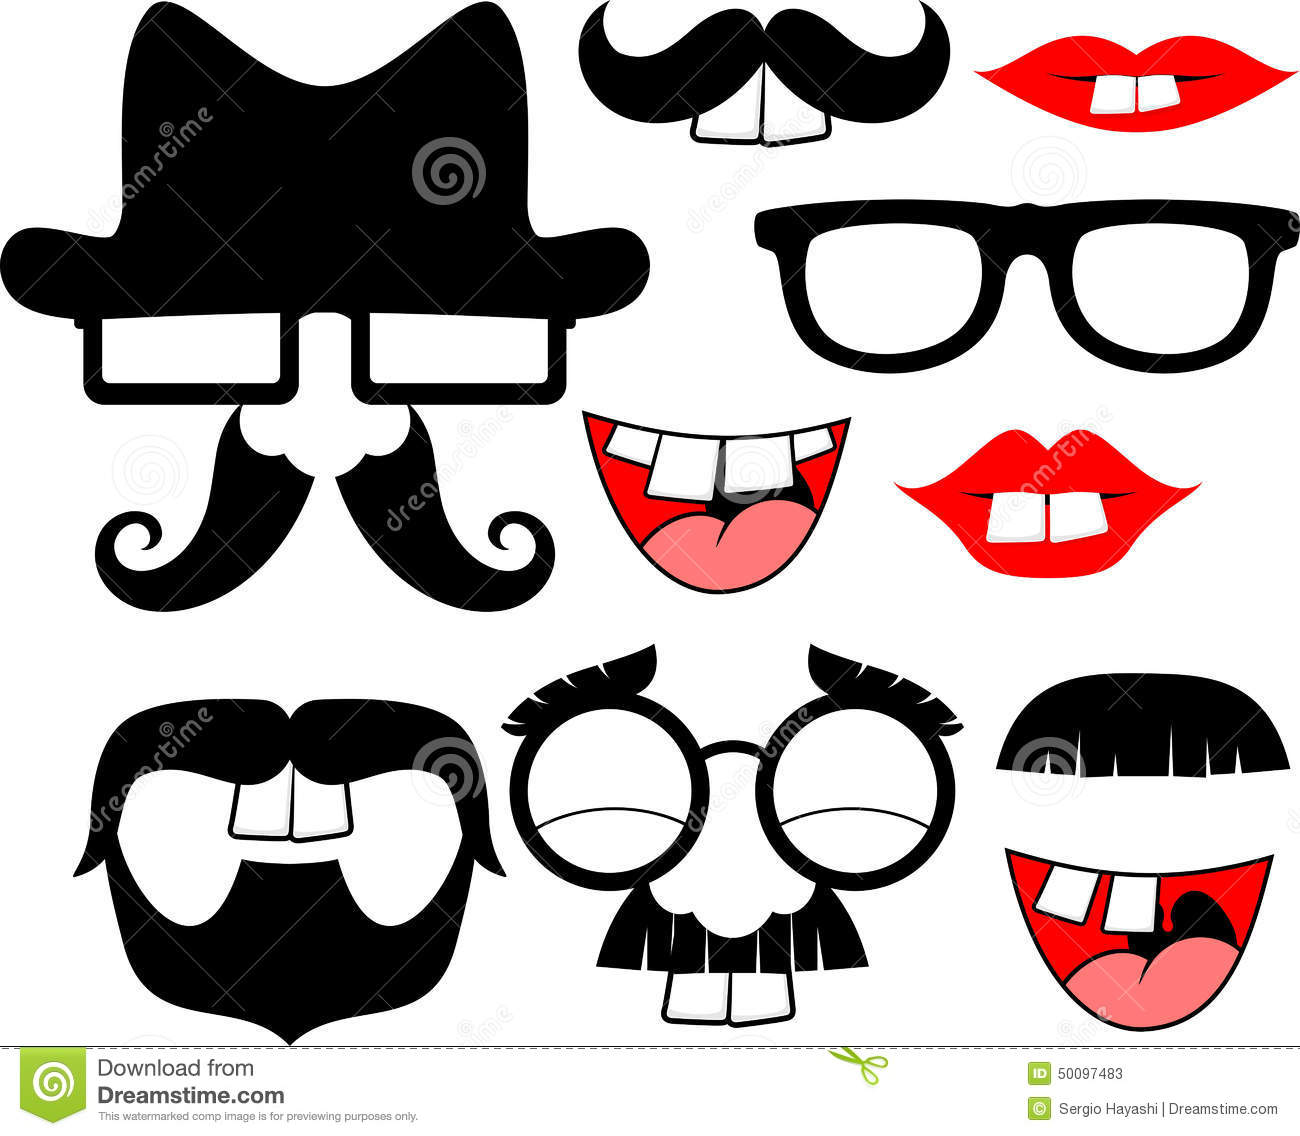 Mustaches And Lips With Big Front Teeth Stock Vector - Image: 50097483